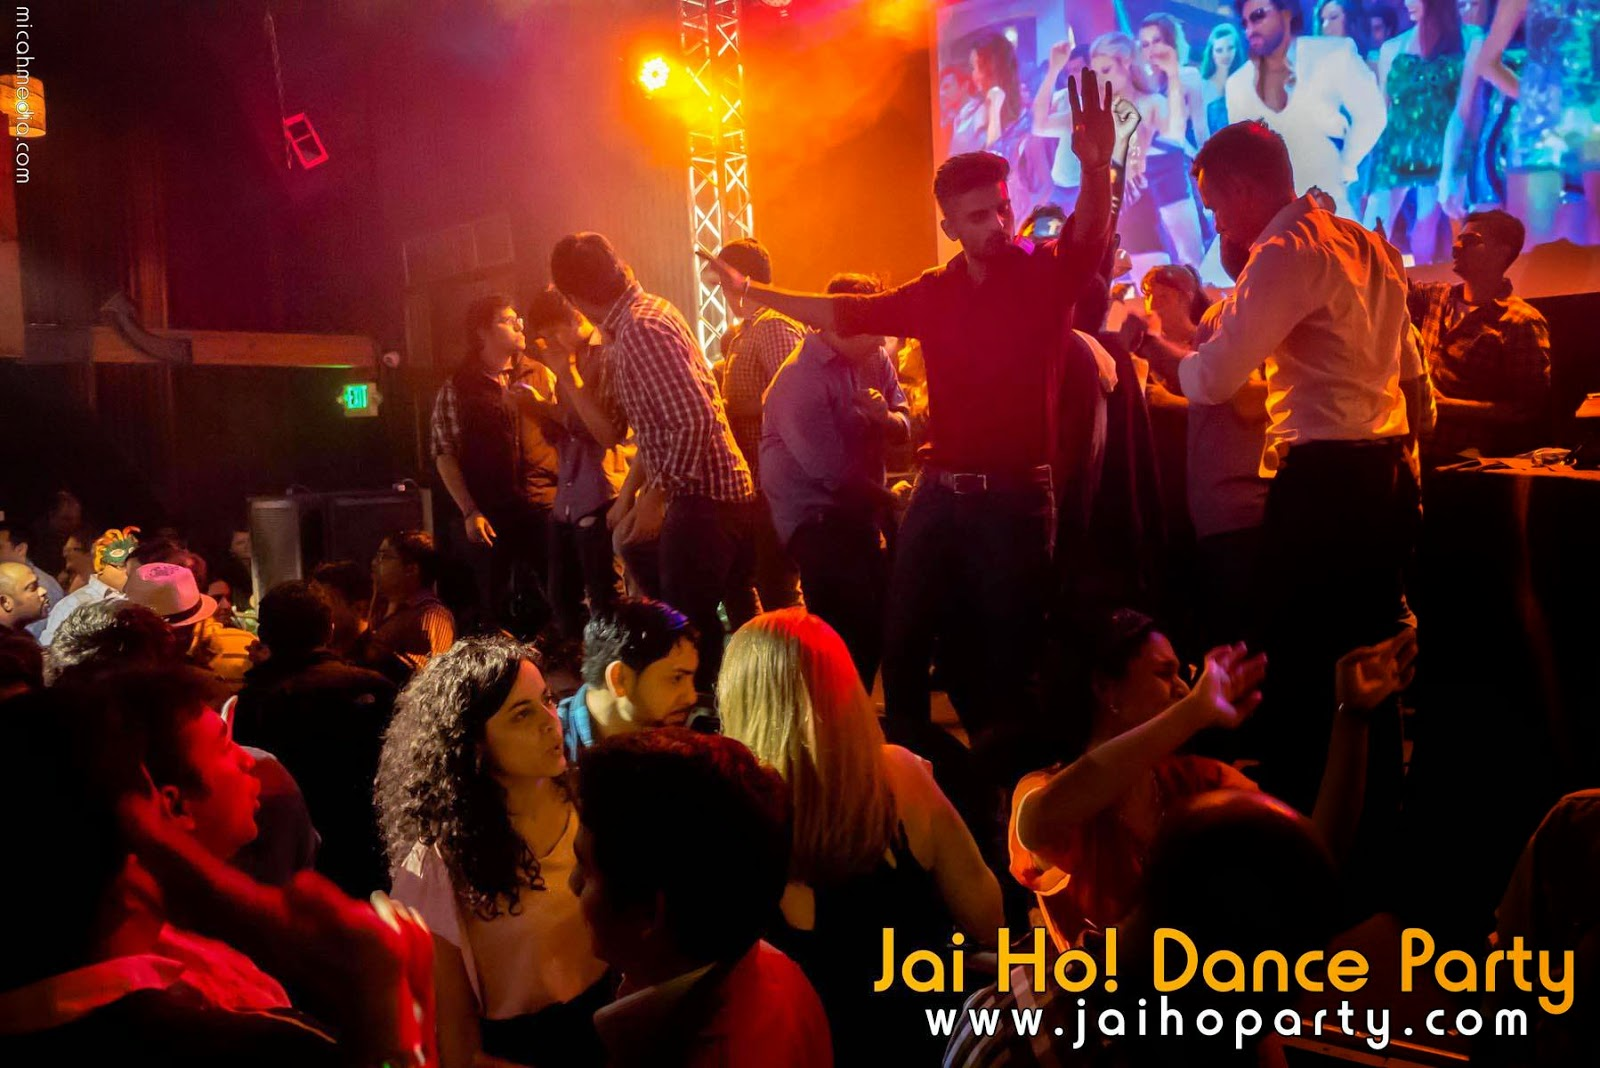 dancing in seattle, seattle night life, Jai ho song, Jai ho party, wedding DJ